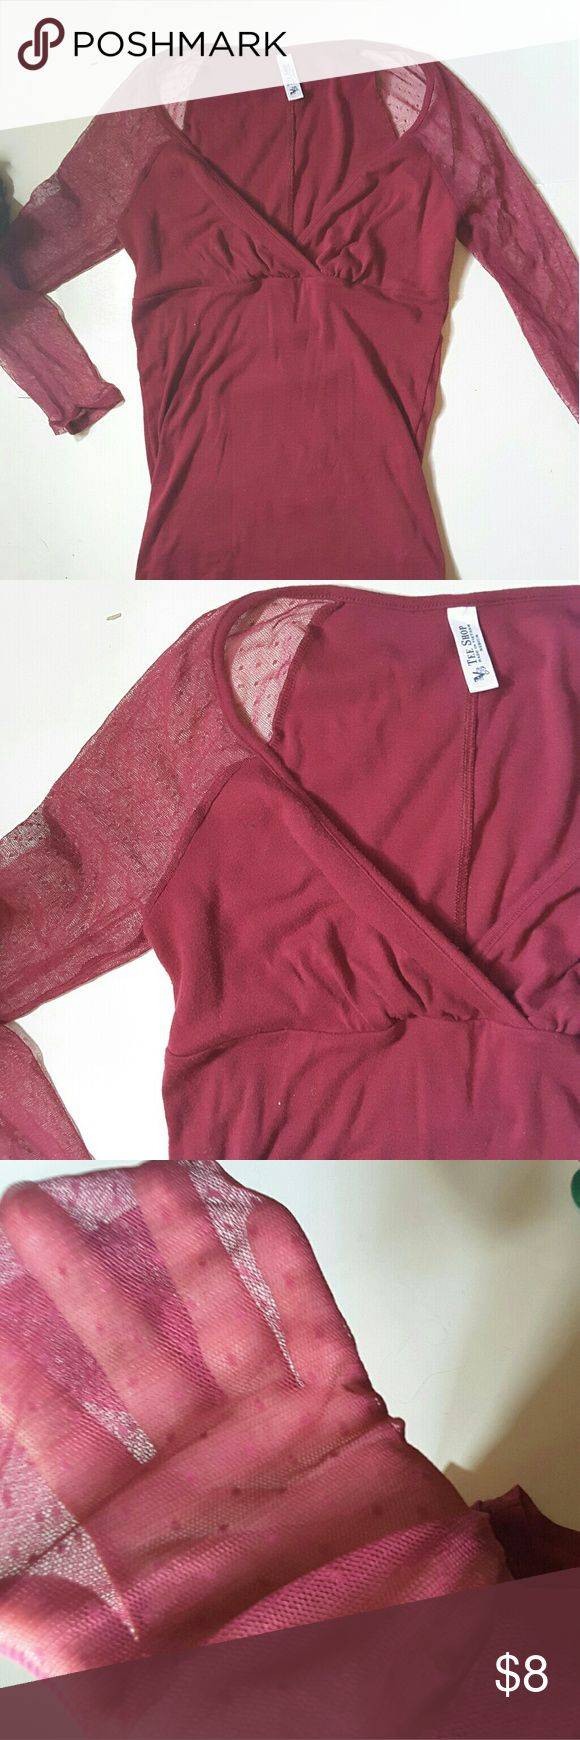 Vs tee shop V neck shirt mesh with pockadots design 3/4 sleeve arms some wear from wash but other than that good condition  14 inches from armpit to armpit 23 inches from shoulder to bottom of shirt Victoria's Secret Tops